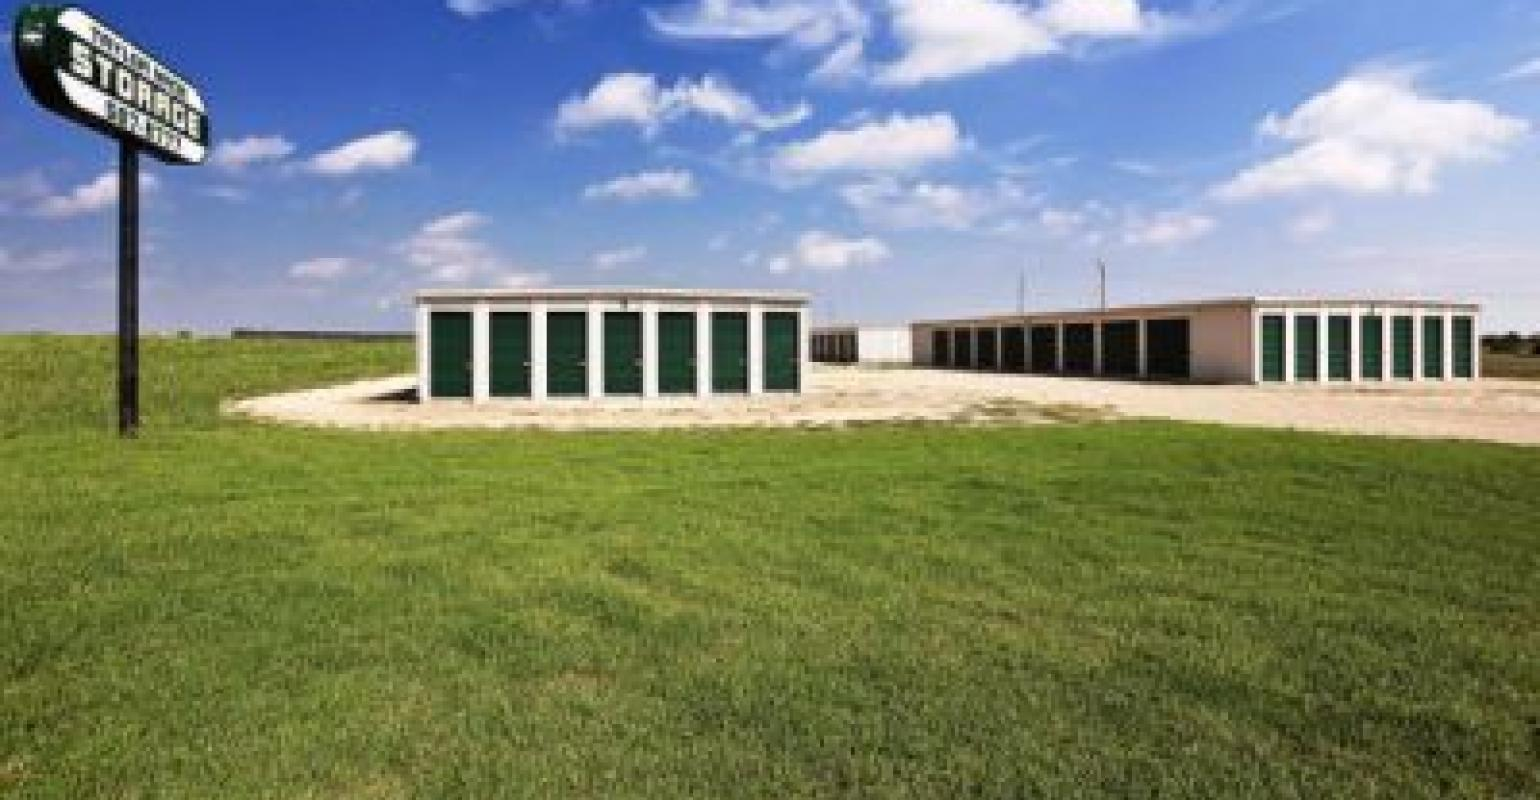 Finding A Niche In The Heartland: Taylor Made Storage Finds Development  Opportunity In Rural America